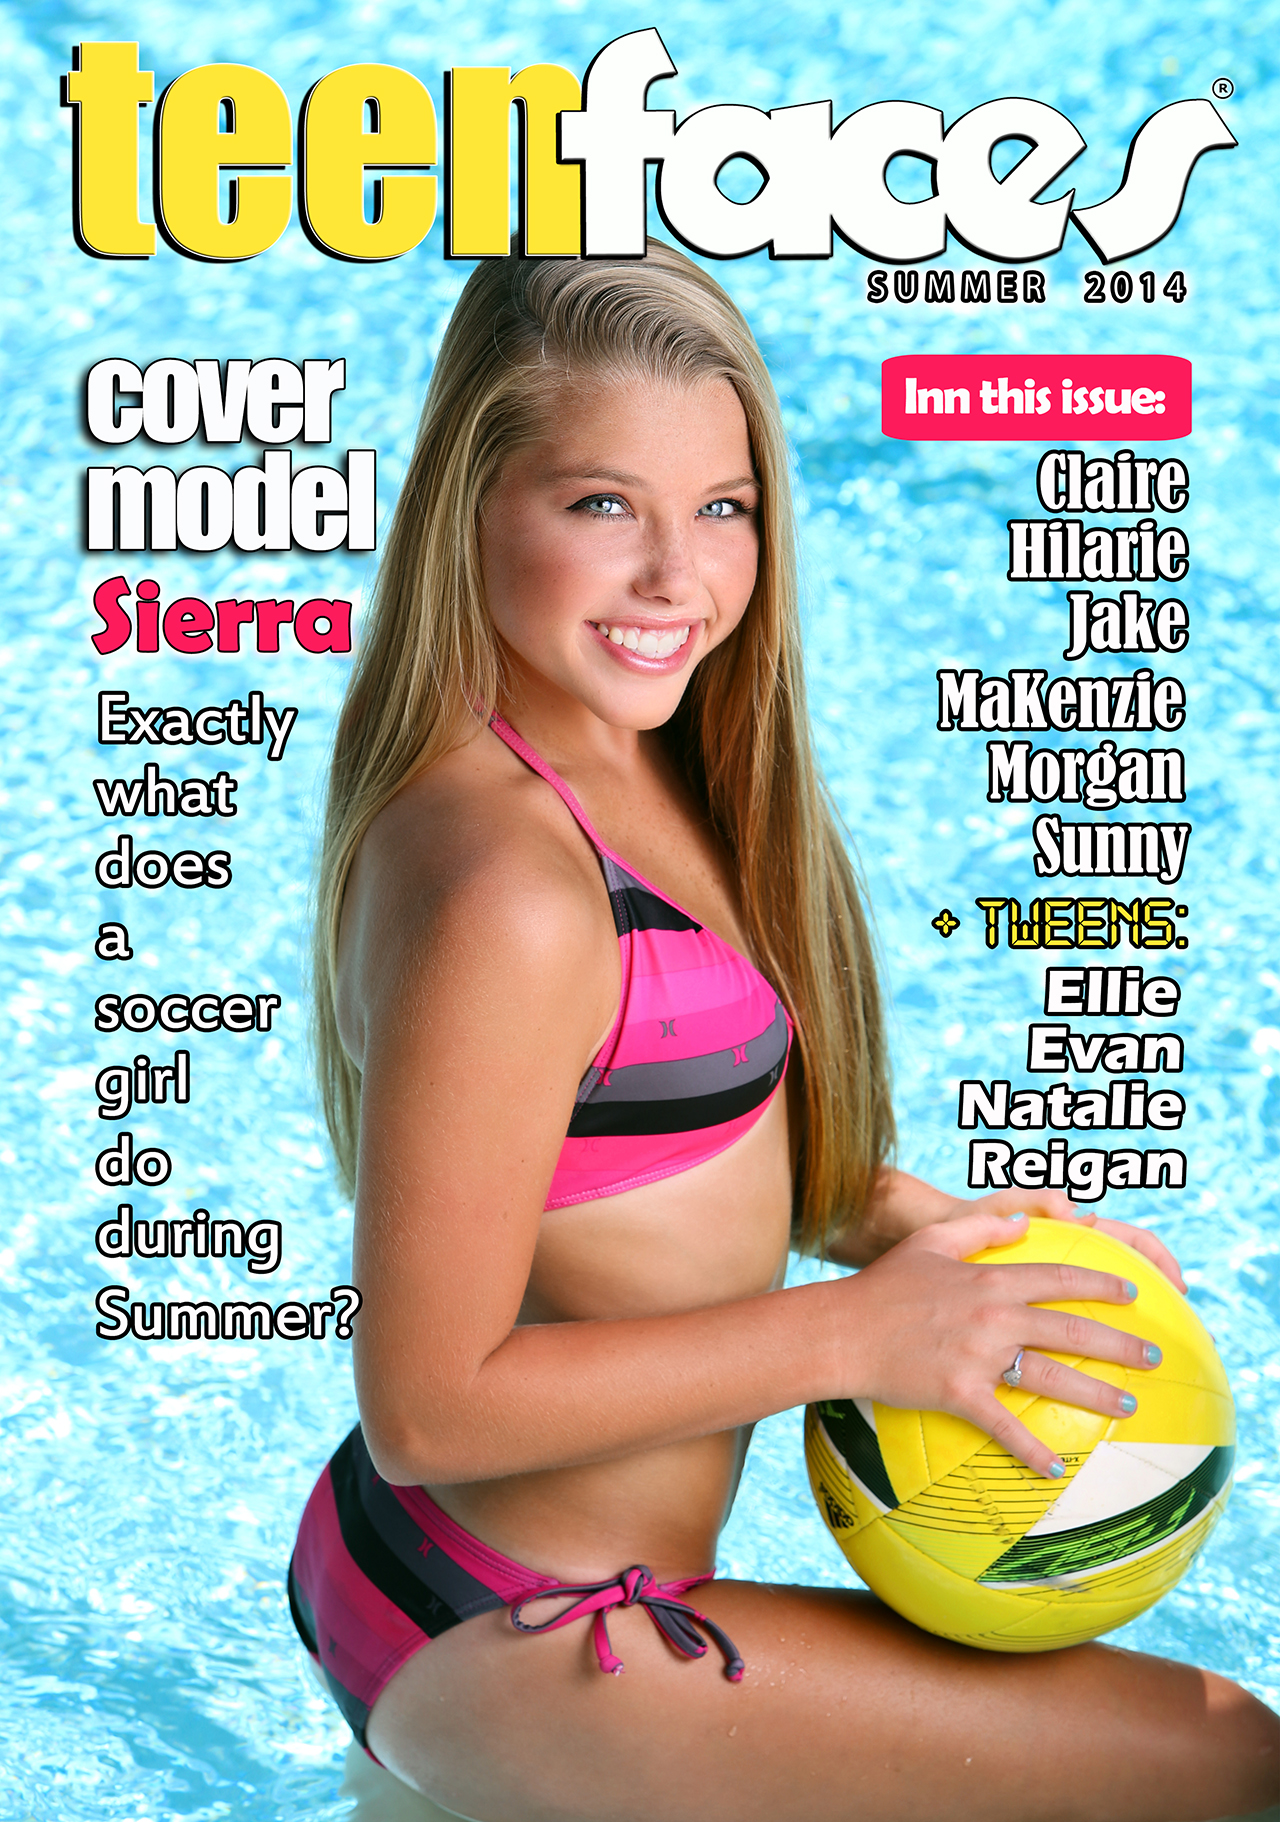 Are you ready for some fun in the sun? Our TeenFaces models gives you ...